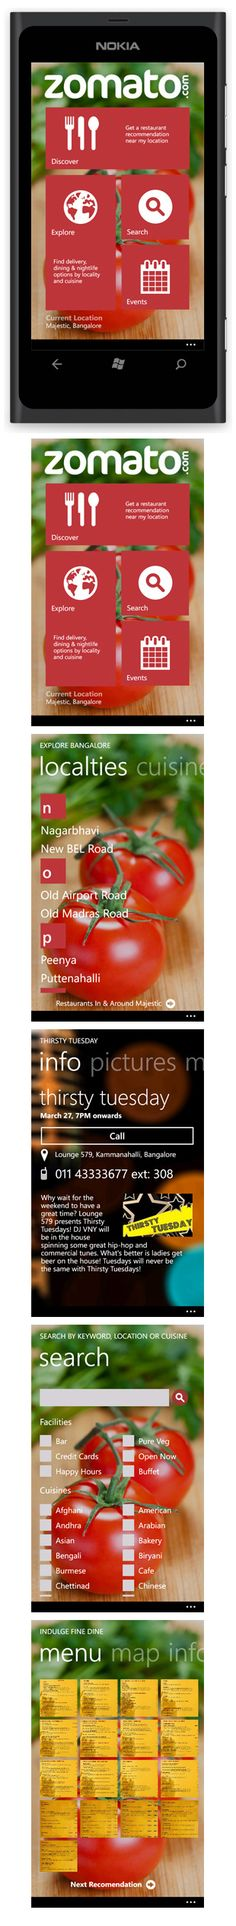 This is what I'm talking about with the gross ass new myspace living social twitter what the fuck ever design of right now. it's for the pinterest users who only pin stupid things.